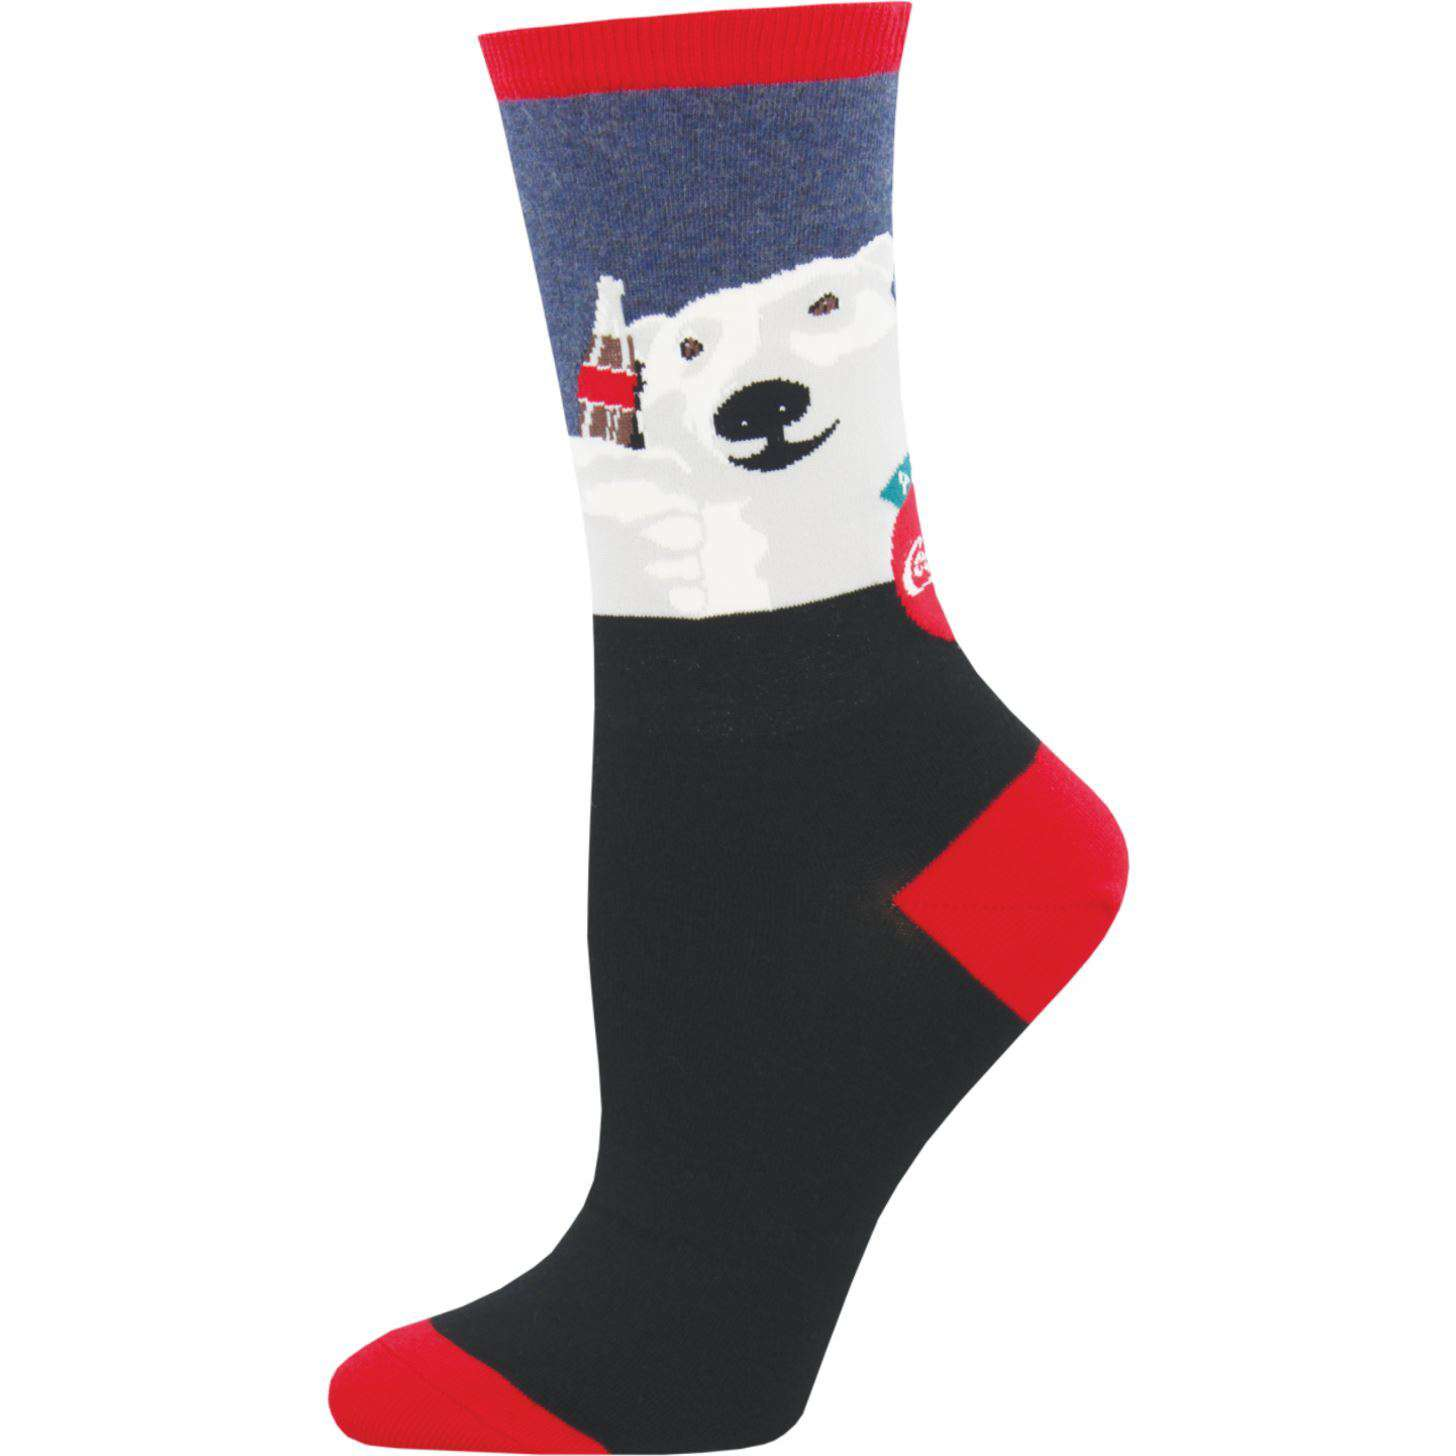 BAMSocks.com - Premium Luxury Socks Holiday Socks Coca-Cola Cheers Socks |  Women's Crew Socks